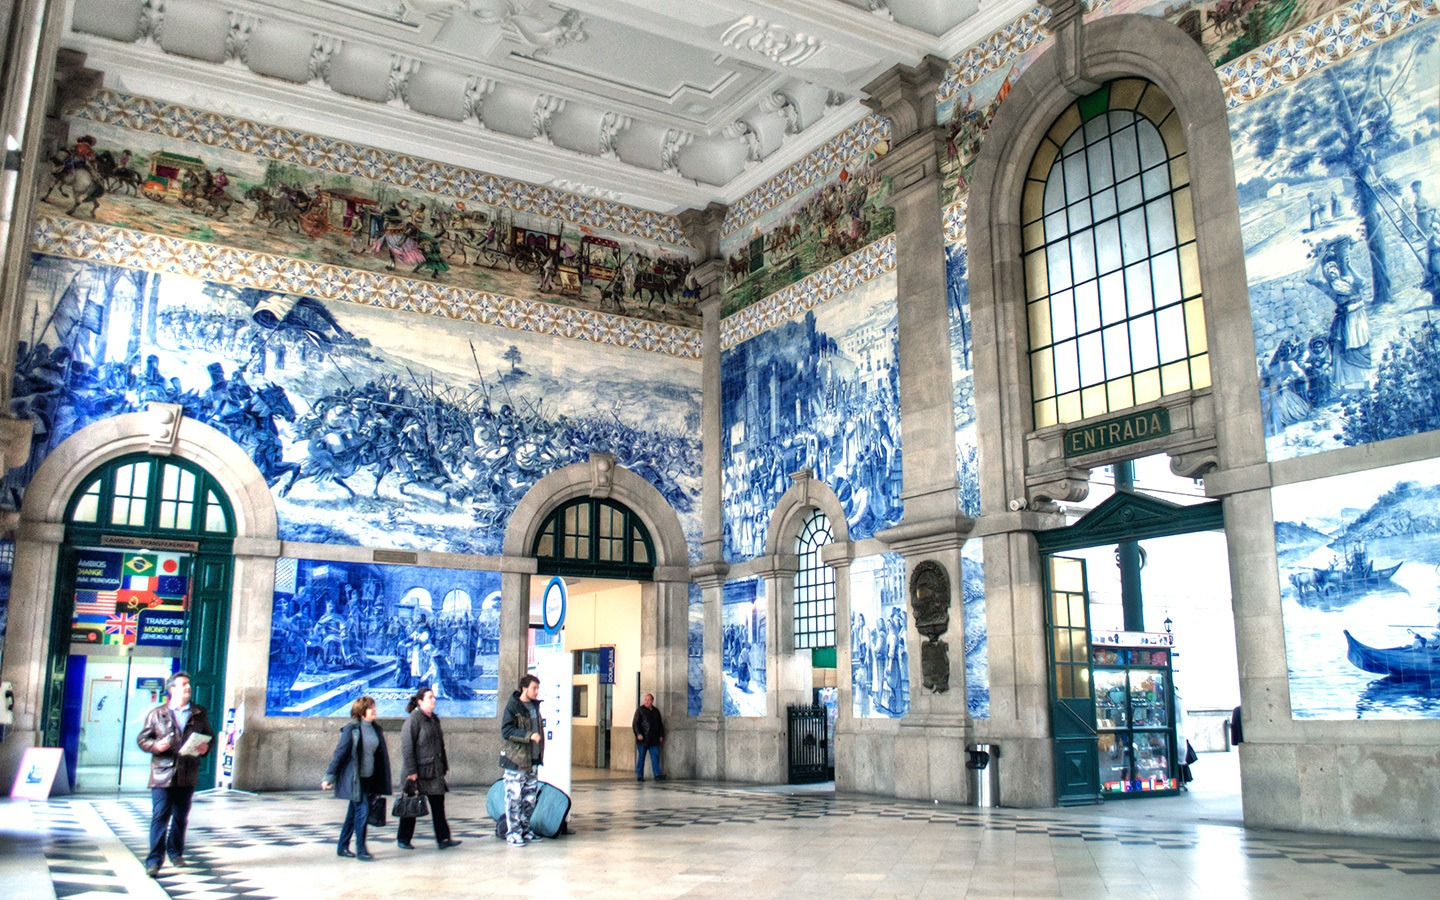 São Bento train station in Porto, Portugal